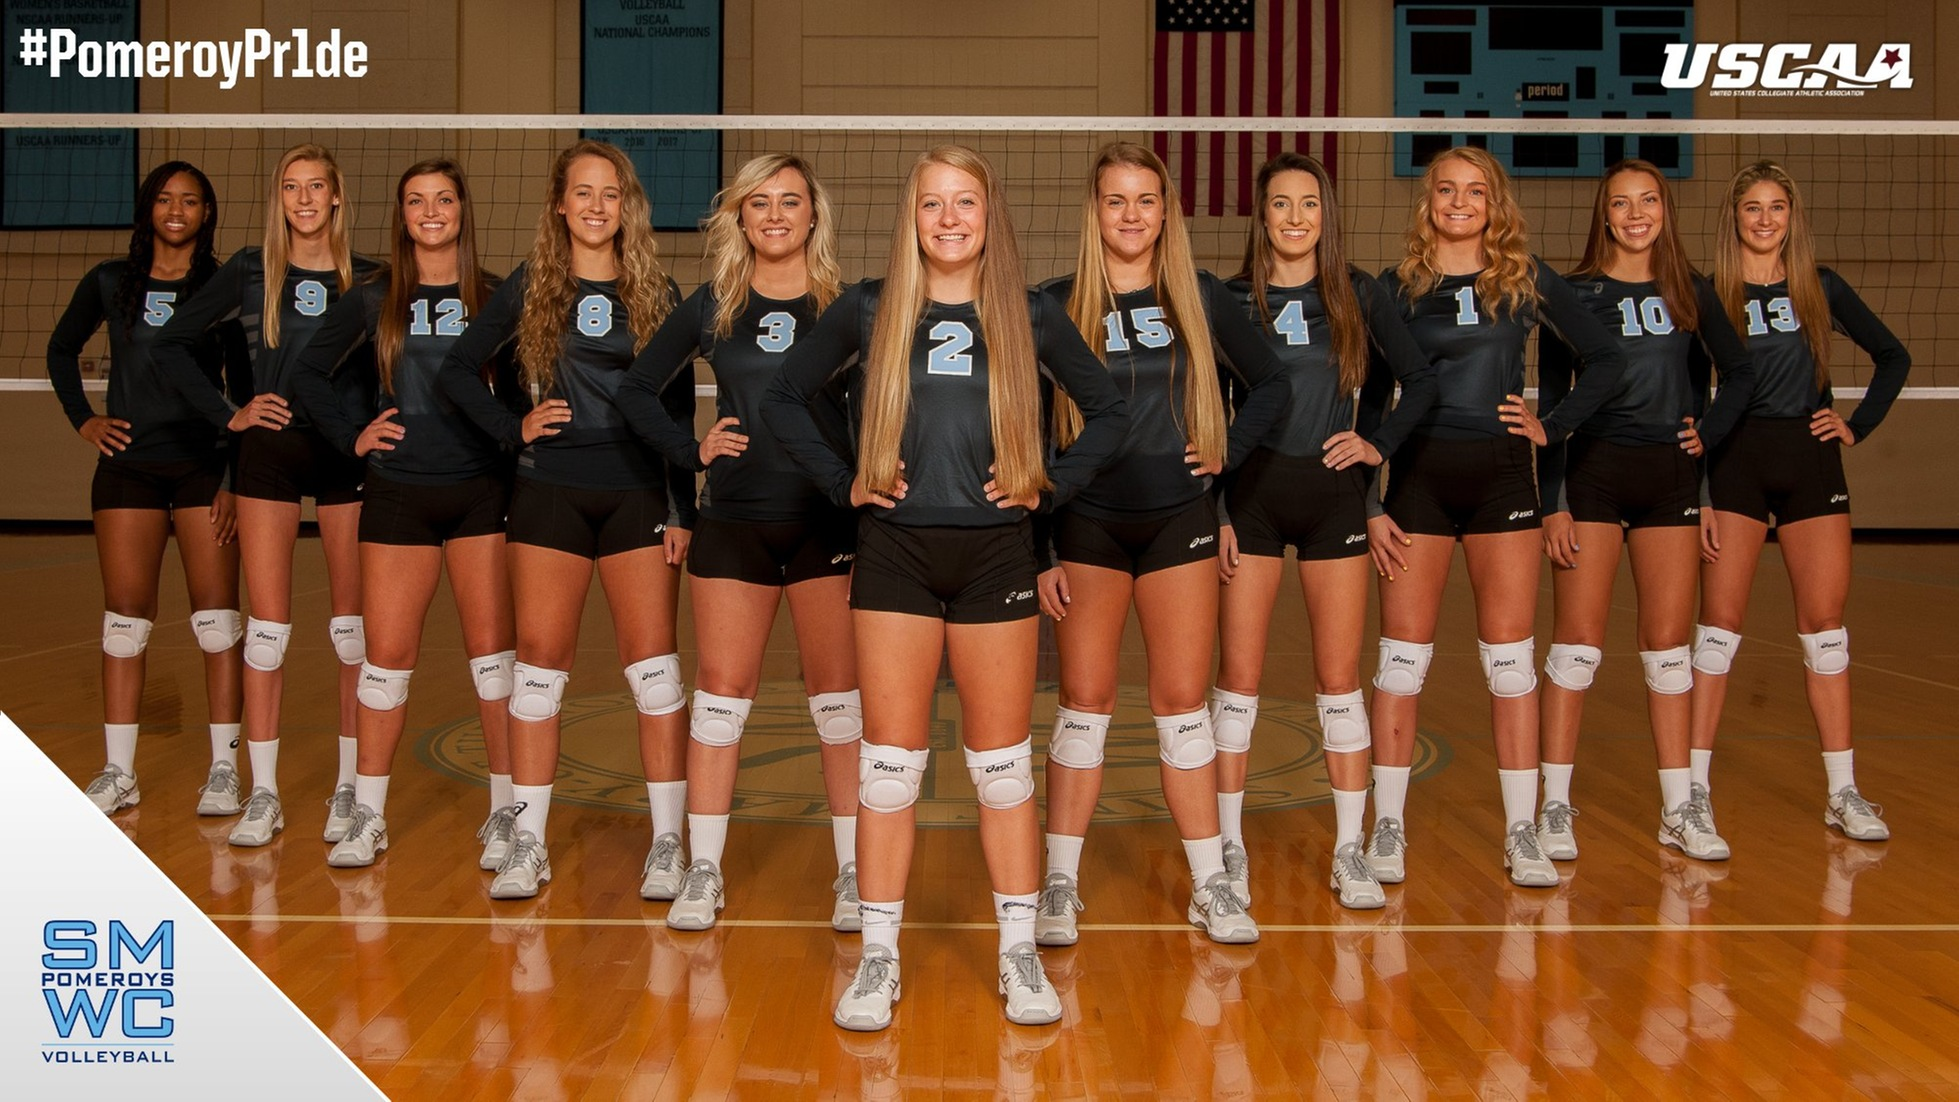 SMWC Volleyball Is Heading to the USCAA Volleyball National Championship